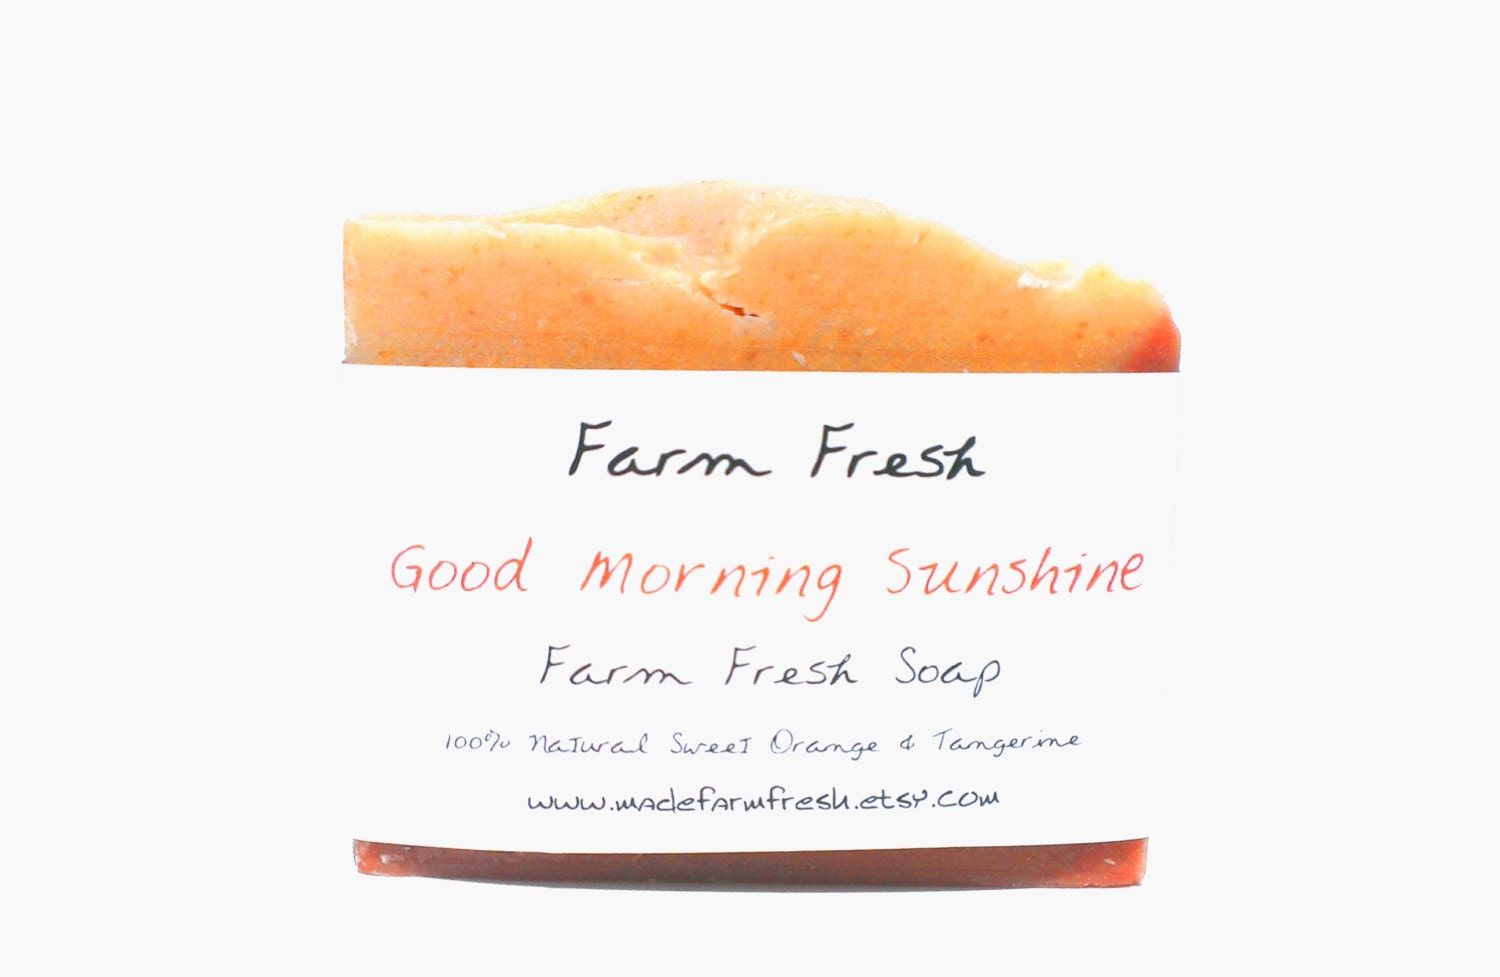 Good Morning Sunshine 100% Natural Handmade Soap Sweet Orange Tangerine Shea Butter Raw Honey Organic Oatmeal - MadeFarmFresh